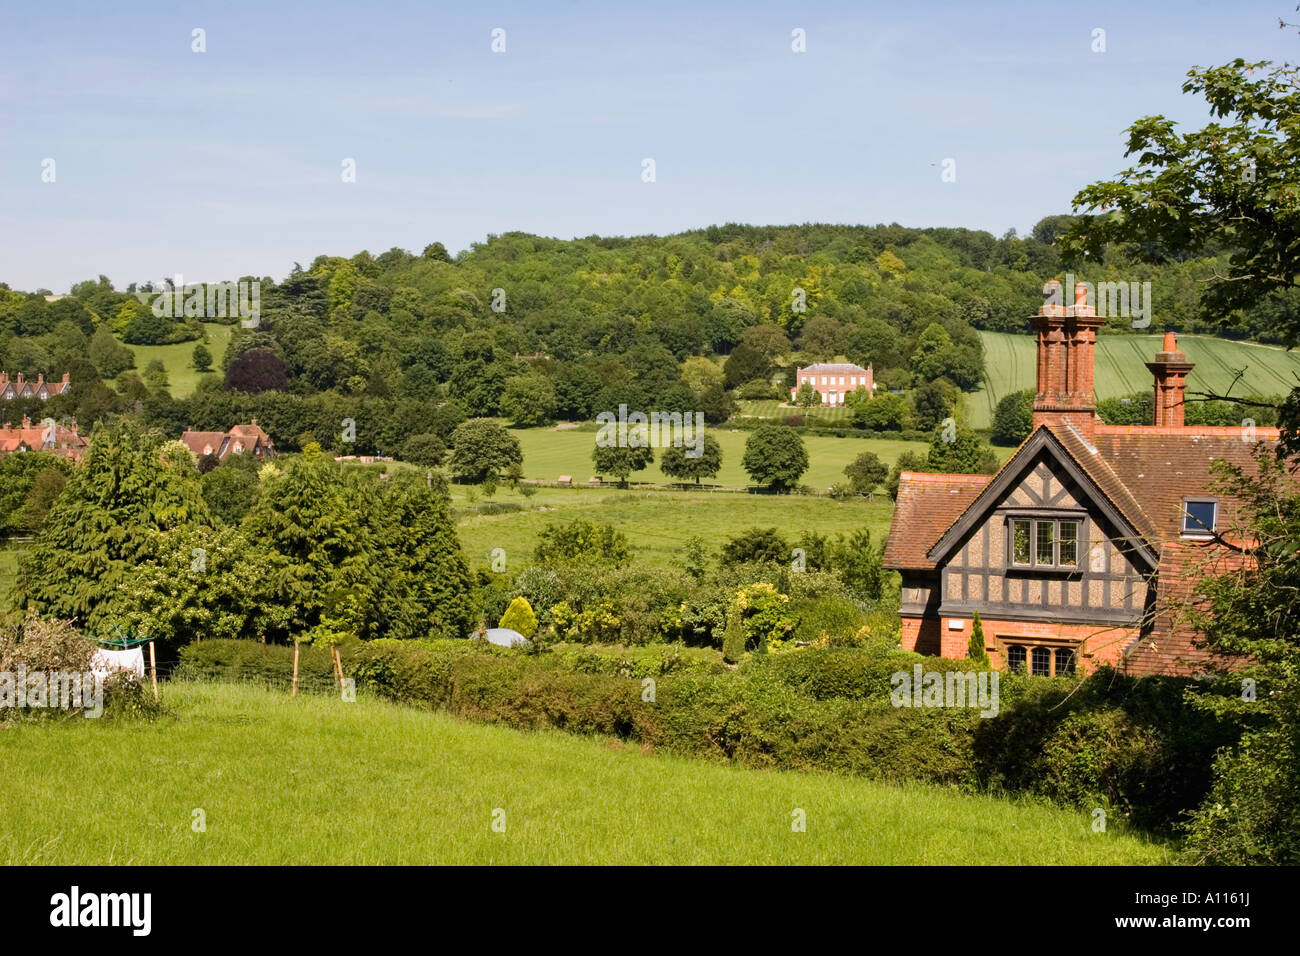 Thames Valley near Hambleden Village - Buckinghamshire - Stock Image